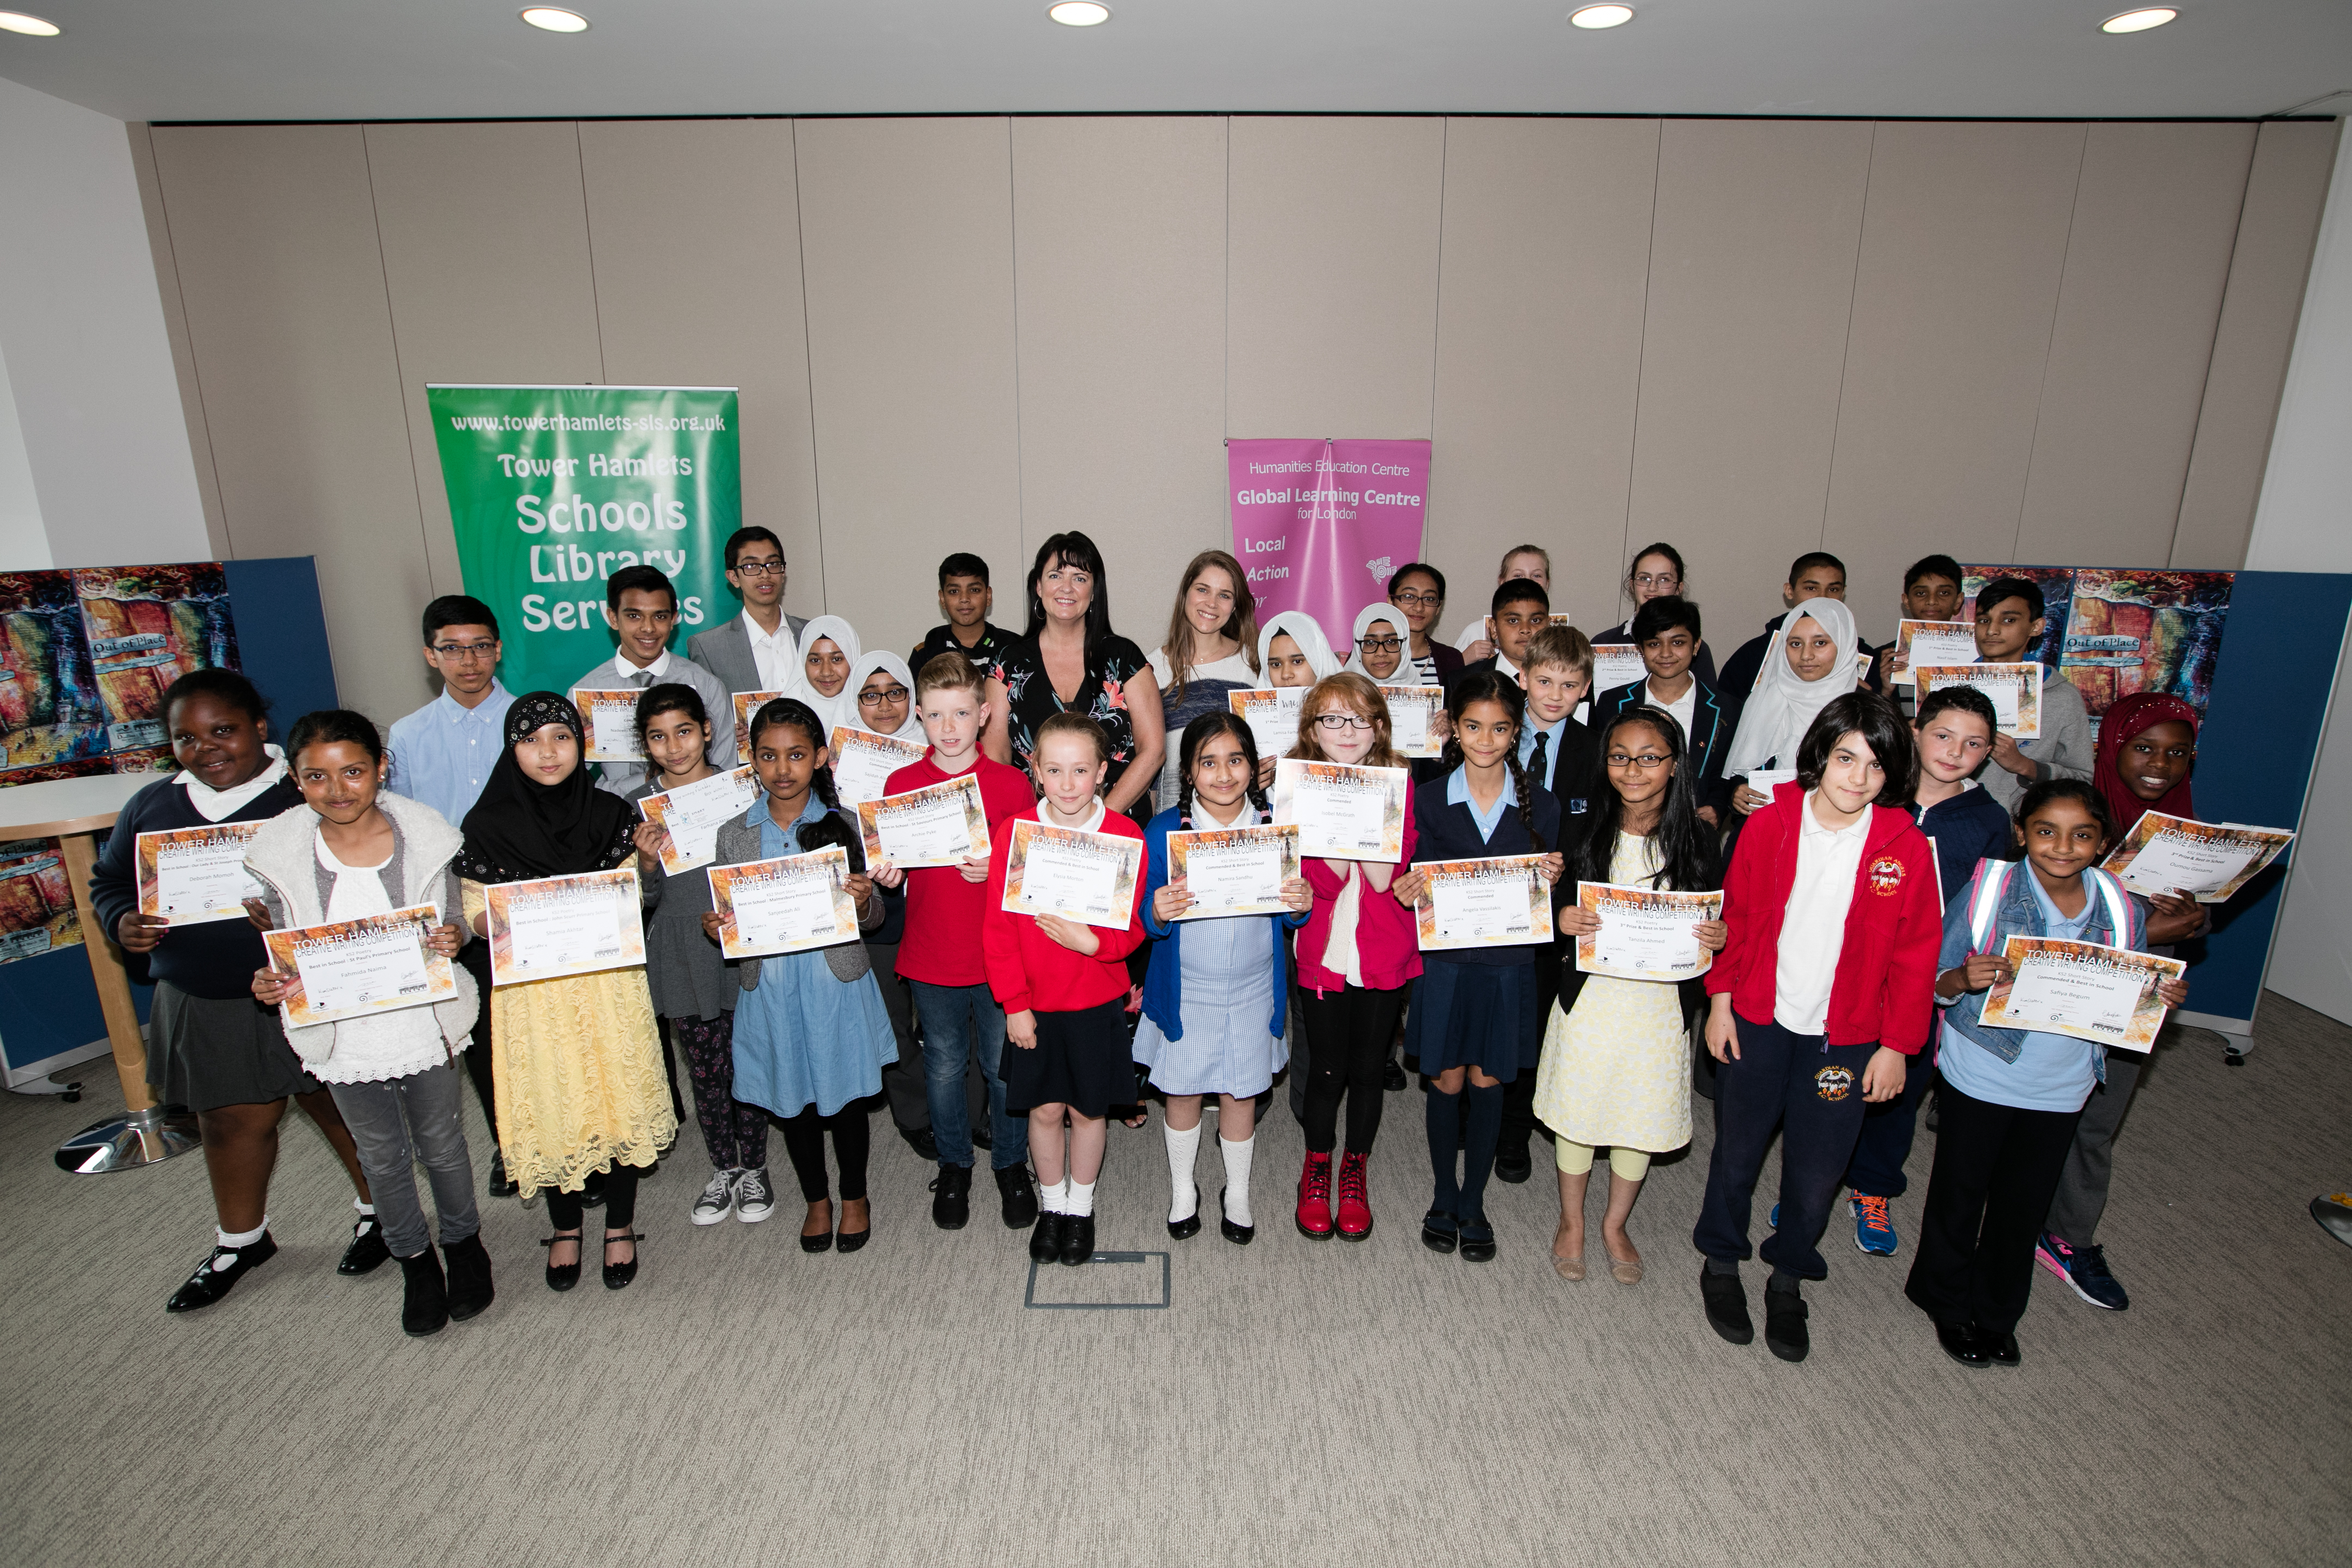 Tower Hamlets Schools Library Service writing awards at Clifford Chance, Canary Wharf.